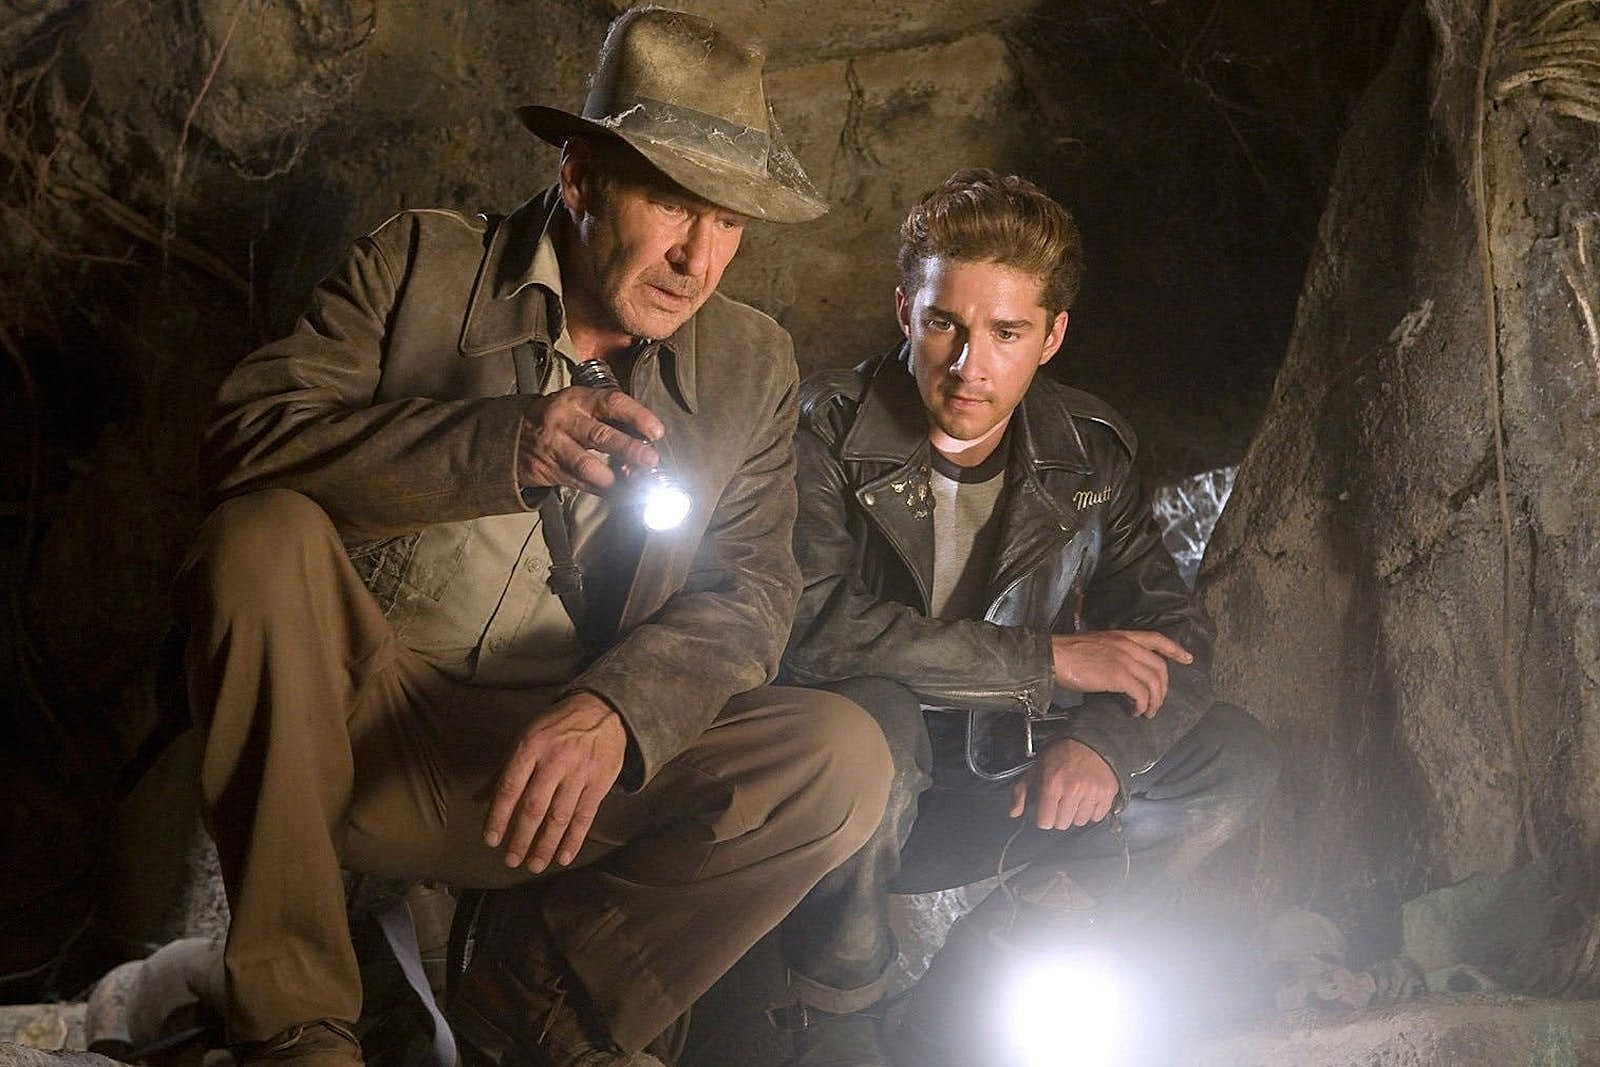 Was the World Wrong About Kingdom of the Crystal Skull?